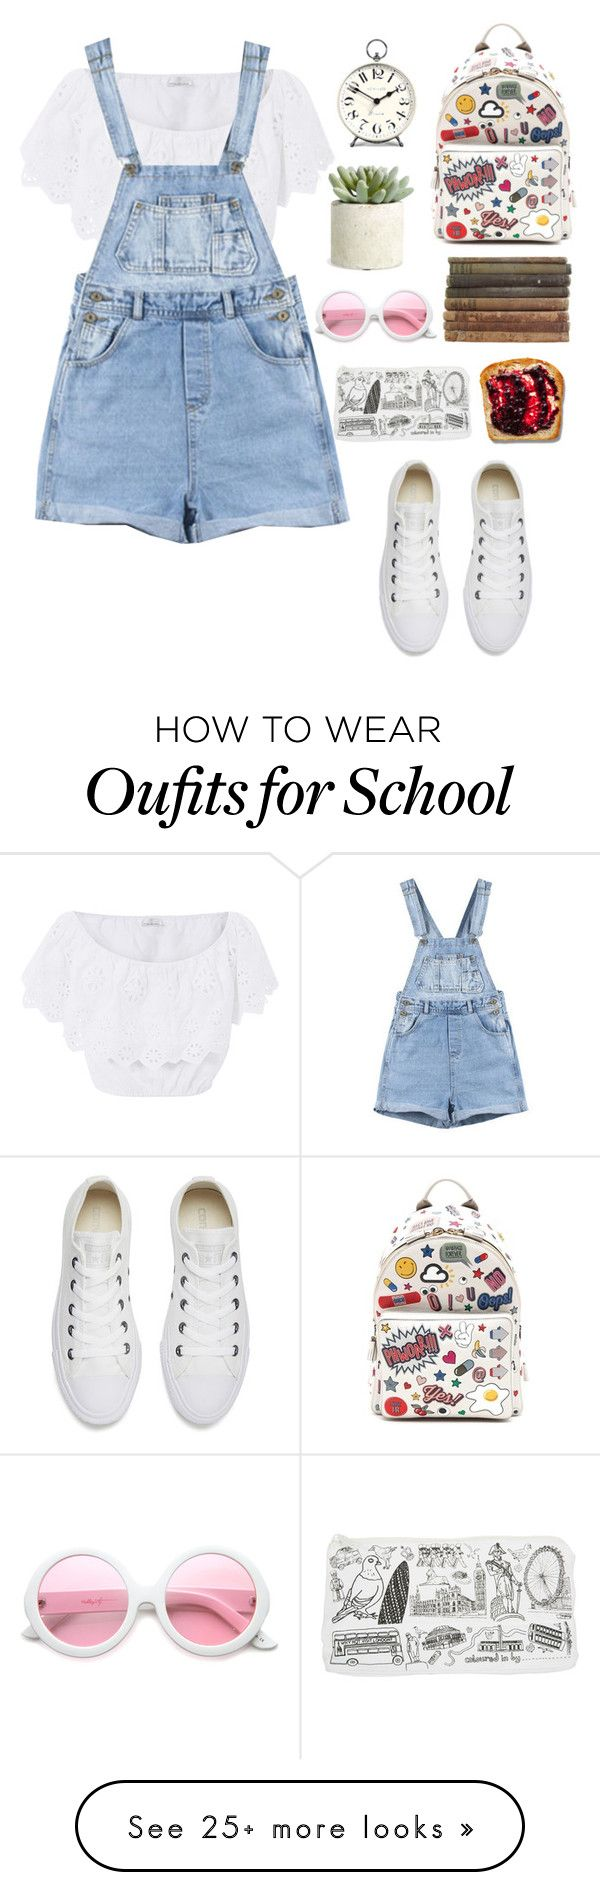 """First day of school"" by hermiona355 on Polyvore featuring Miguelina, Converse, Anya Hindmarch, ZeroUV, Newgate and Allstate Floral"